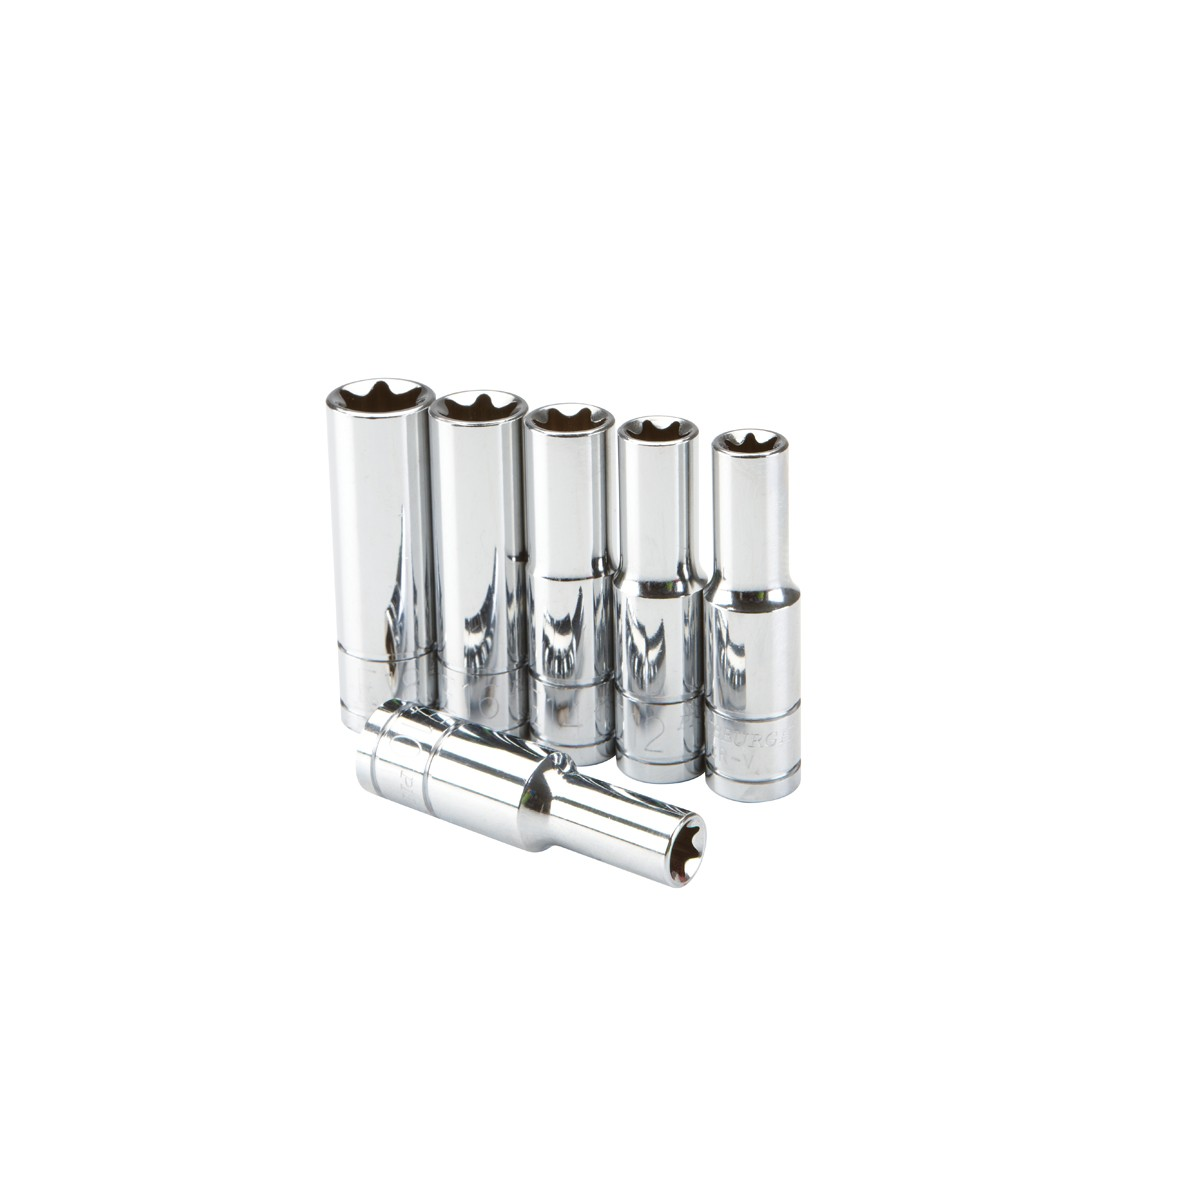 6 Pc 3/8 in. Drive E-Socket Set